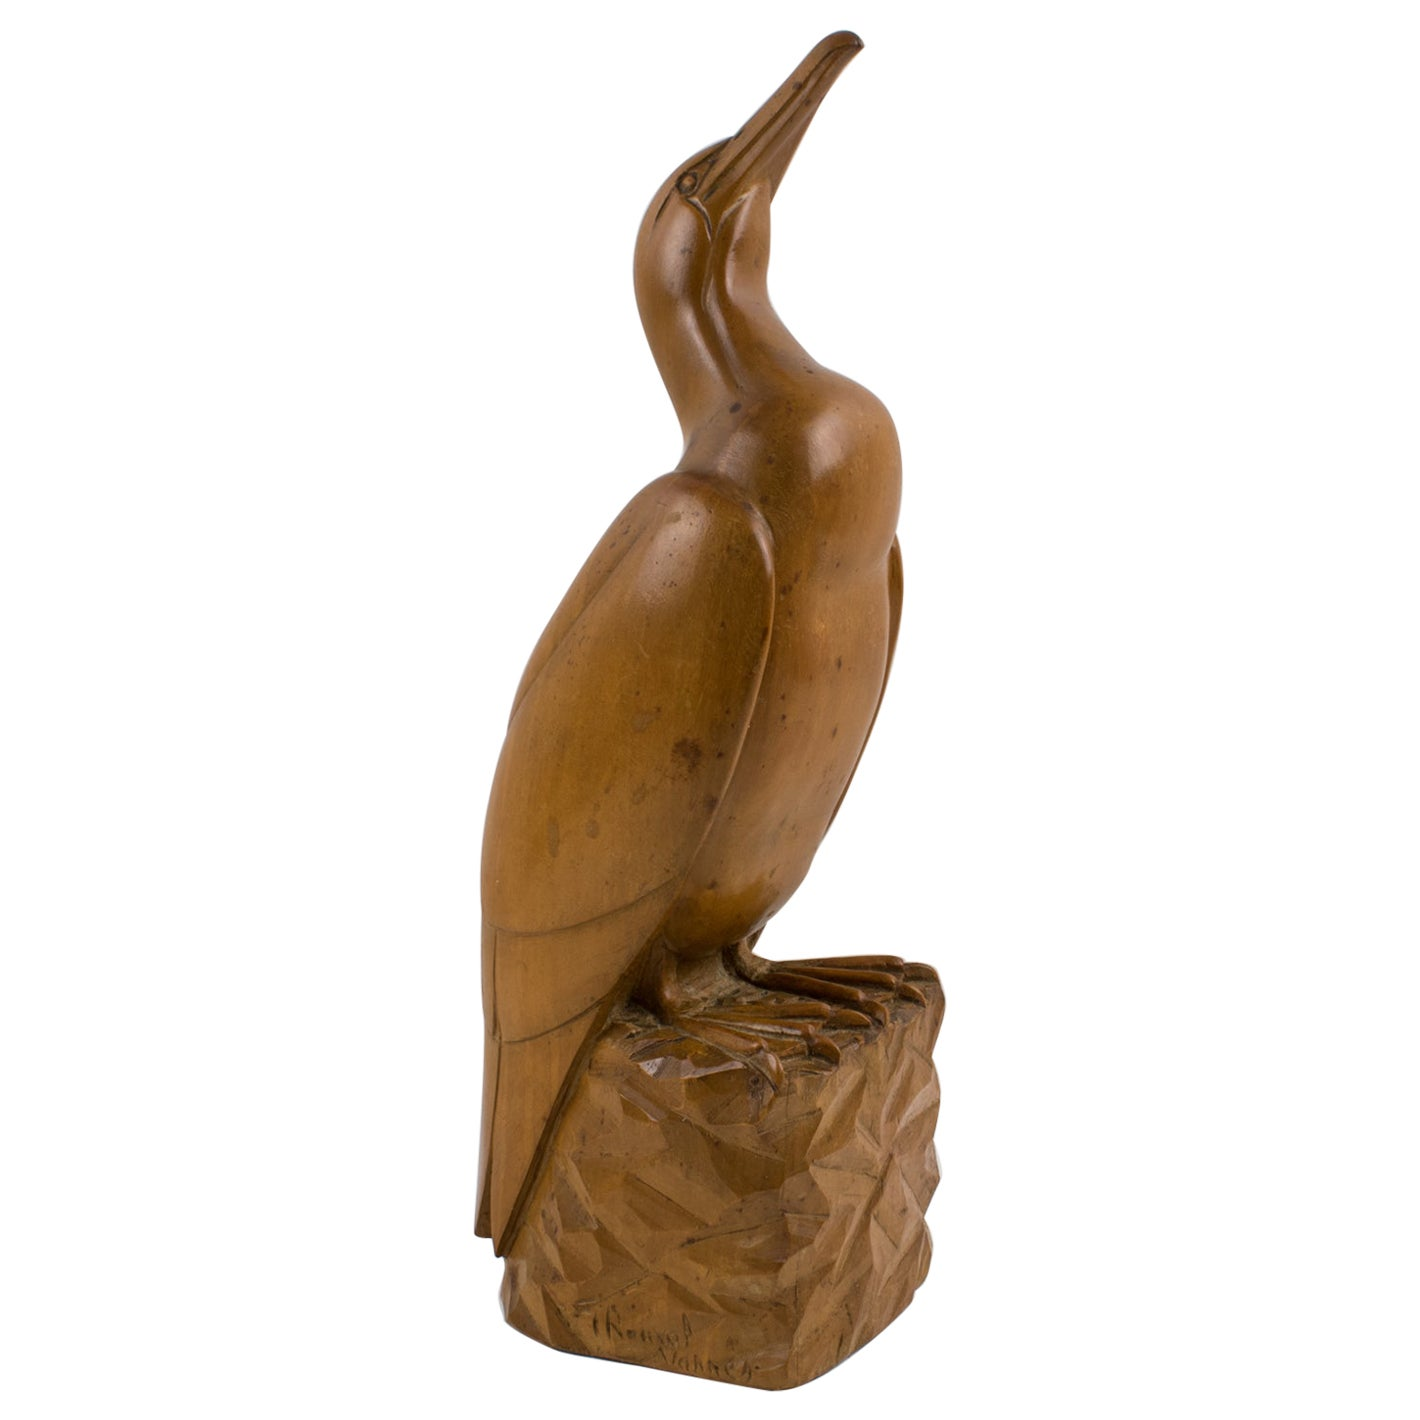 French Art Deco Seagull Wooden Sculpture by G. Rouxel